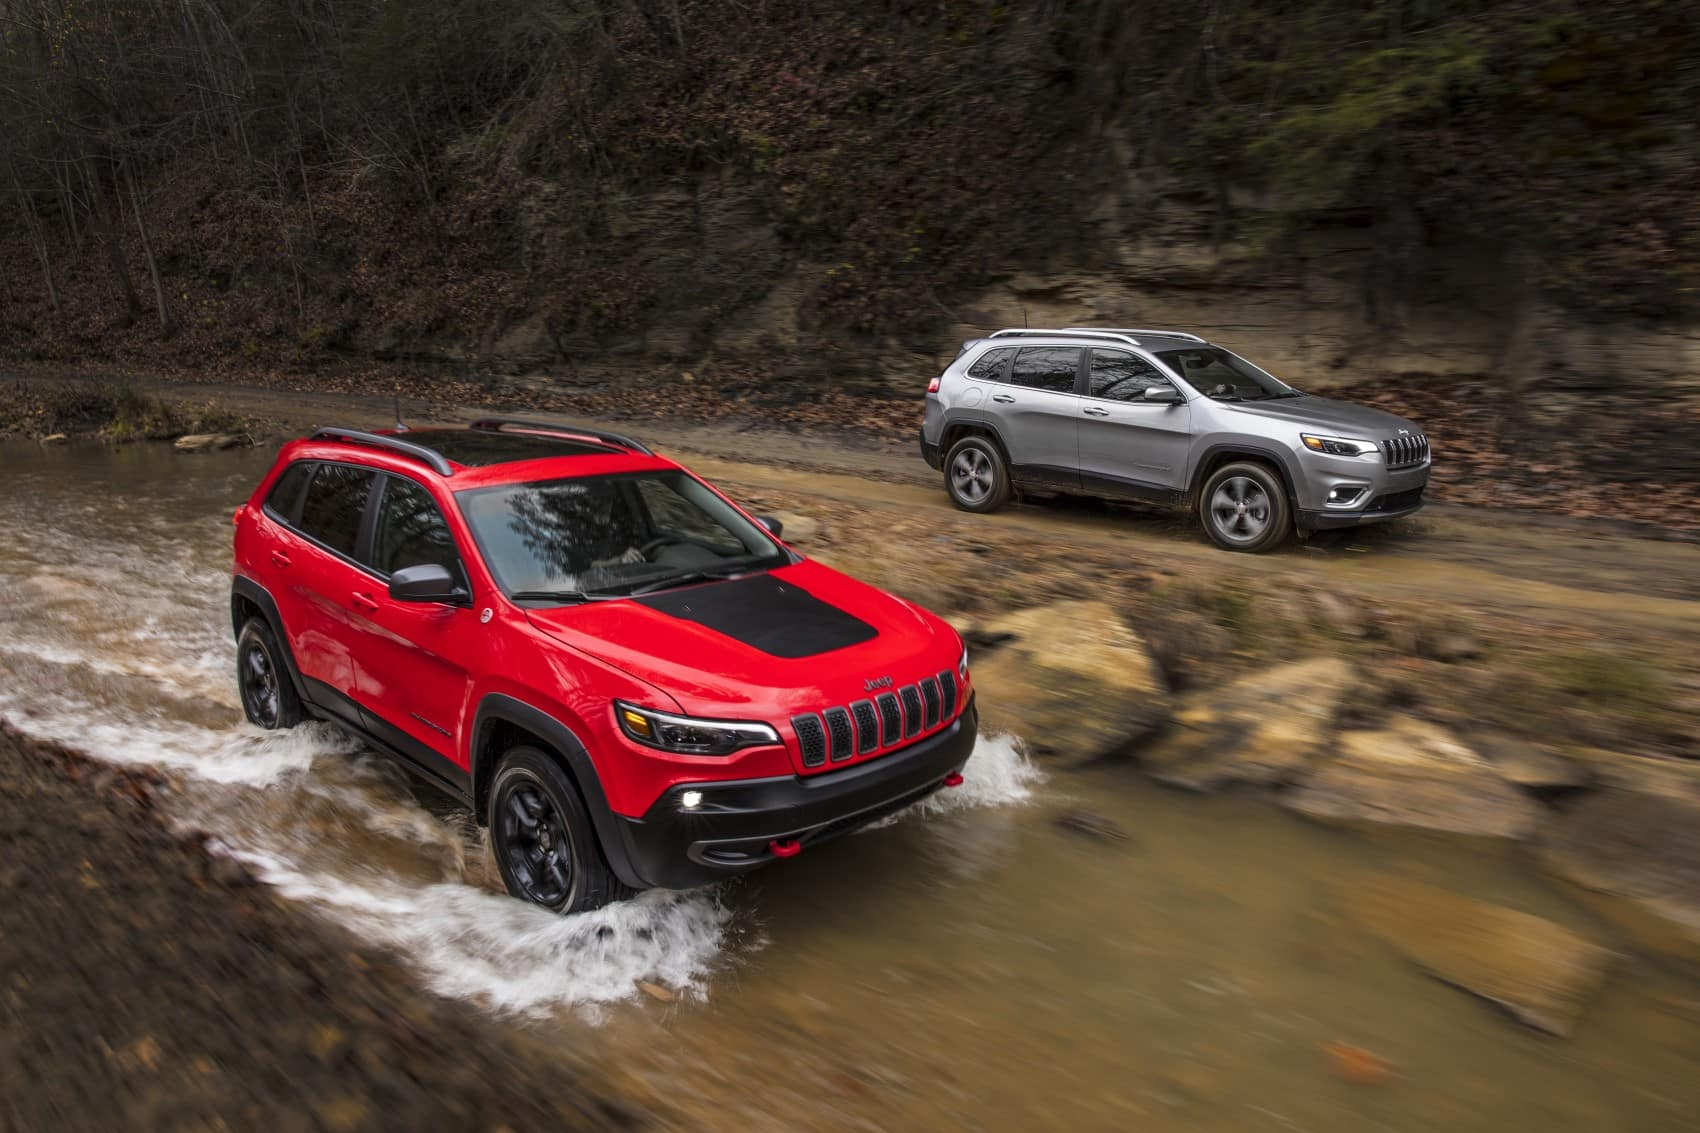 2021 Jeep Cherokee Trailhawk red and silver offroading in creek